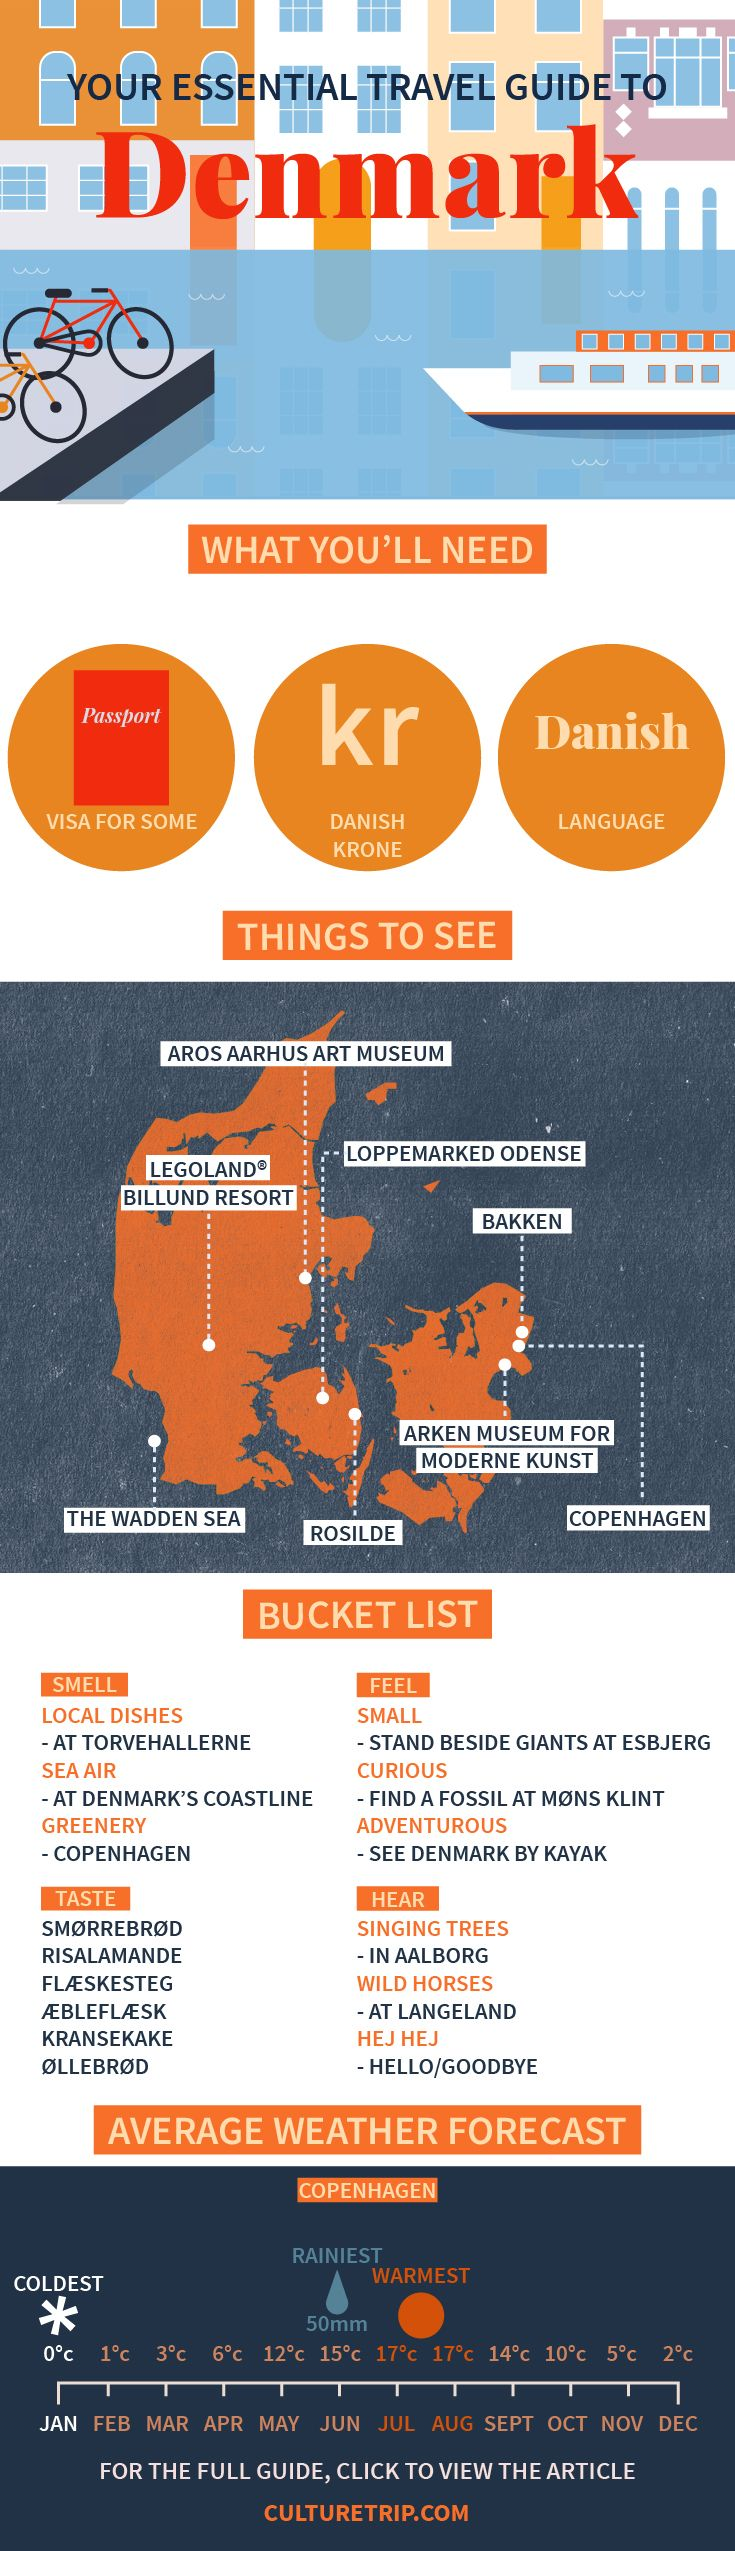 Your Essential Travel Guide to Denmark (Infographic) | Denmark, weekend break, Europe, bucket list, wanderlust, adventure, challenge, coffee, bar, food, must try, Summer, Copenhagen